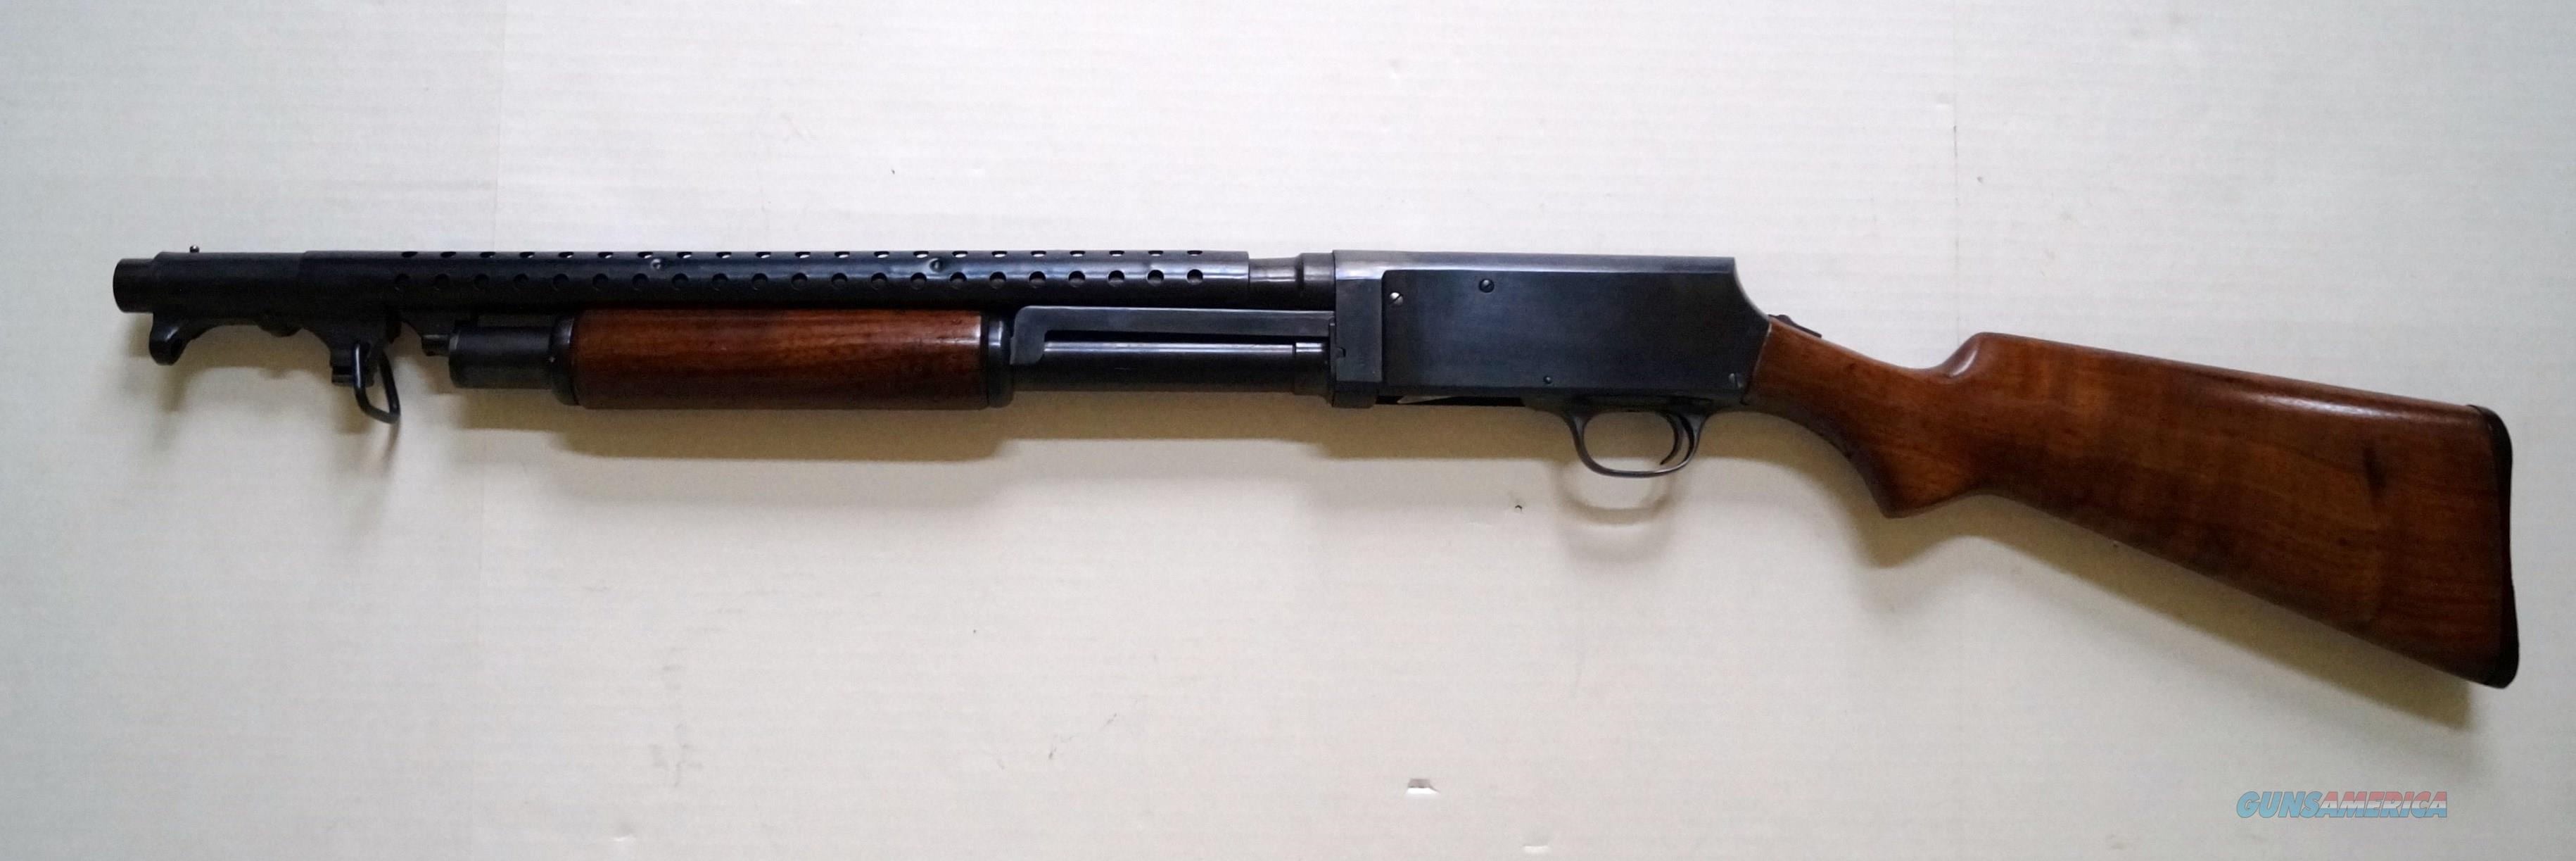 STEVENS MODEL 520-30 WWII MILITARY TRENCH GUN WITH BAYONET  Guns > Shotguns > Stevens Shotguns